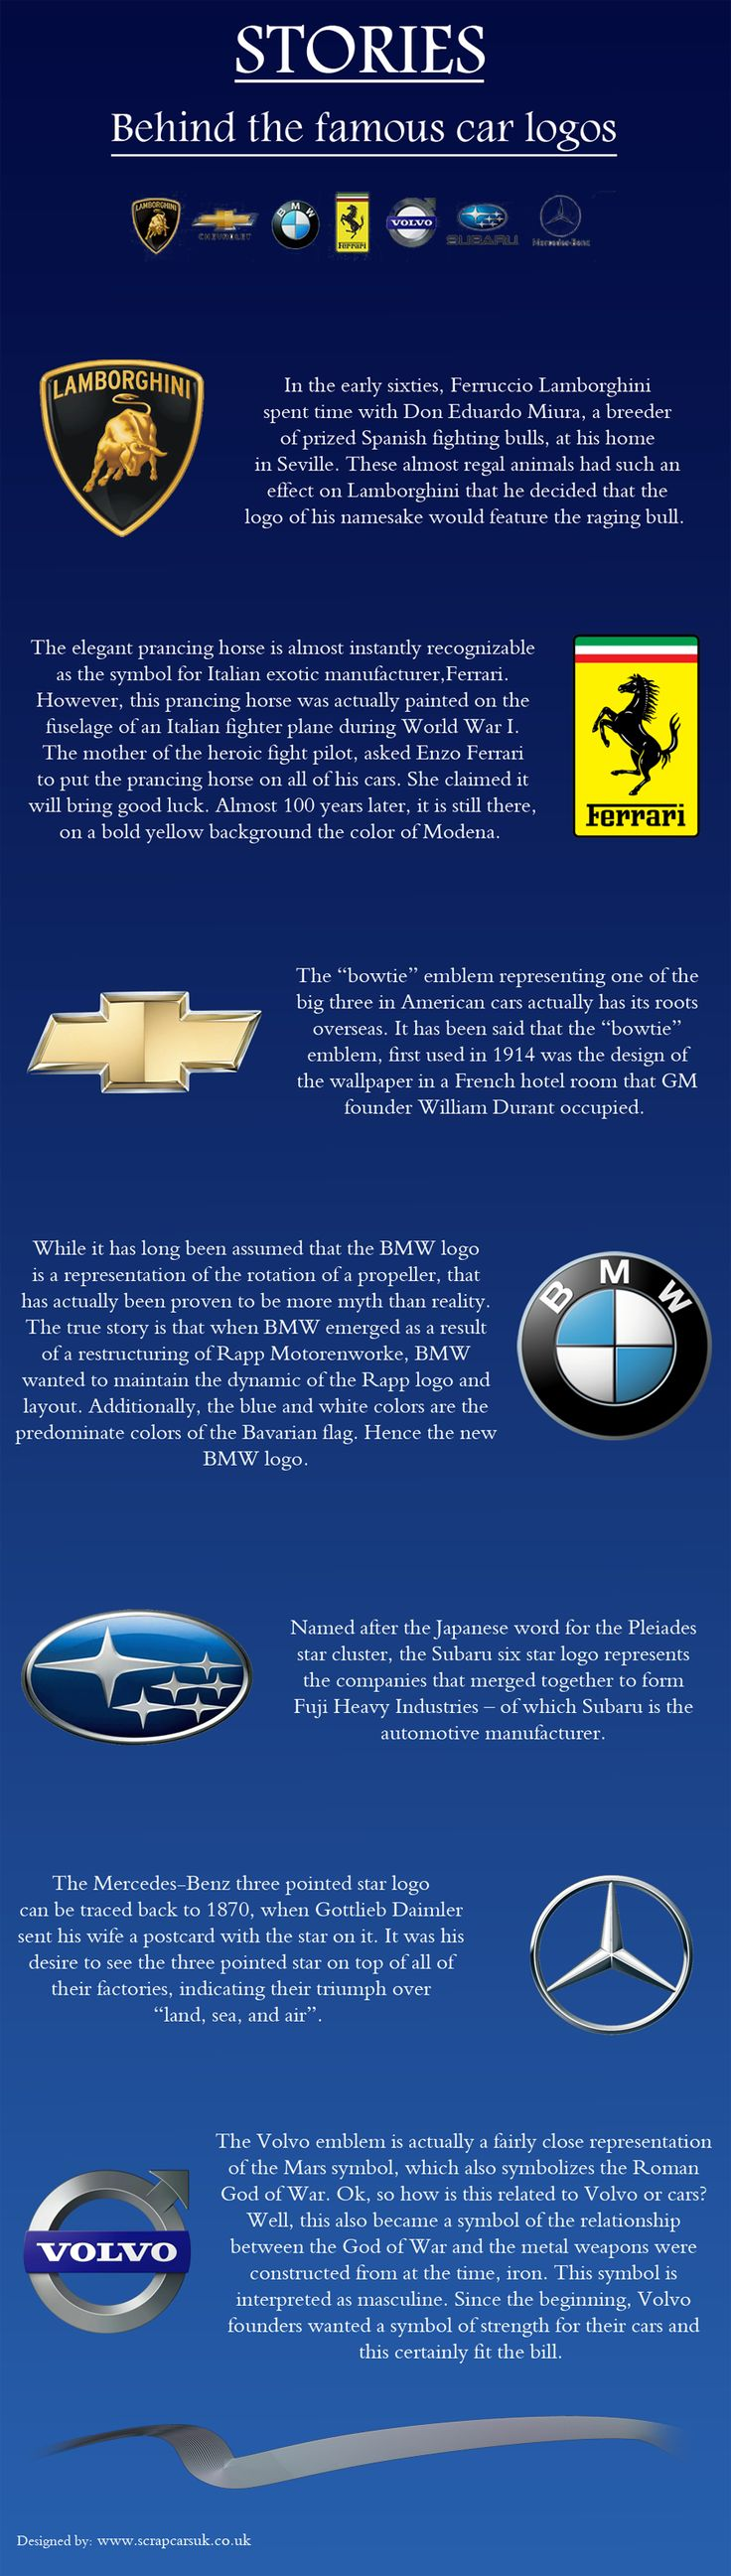 Every brand has a unique logo and definitely there is even a small story around the design. Here are some of the most famous super car brands' logos w